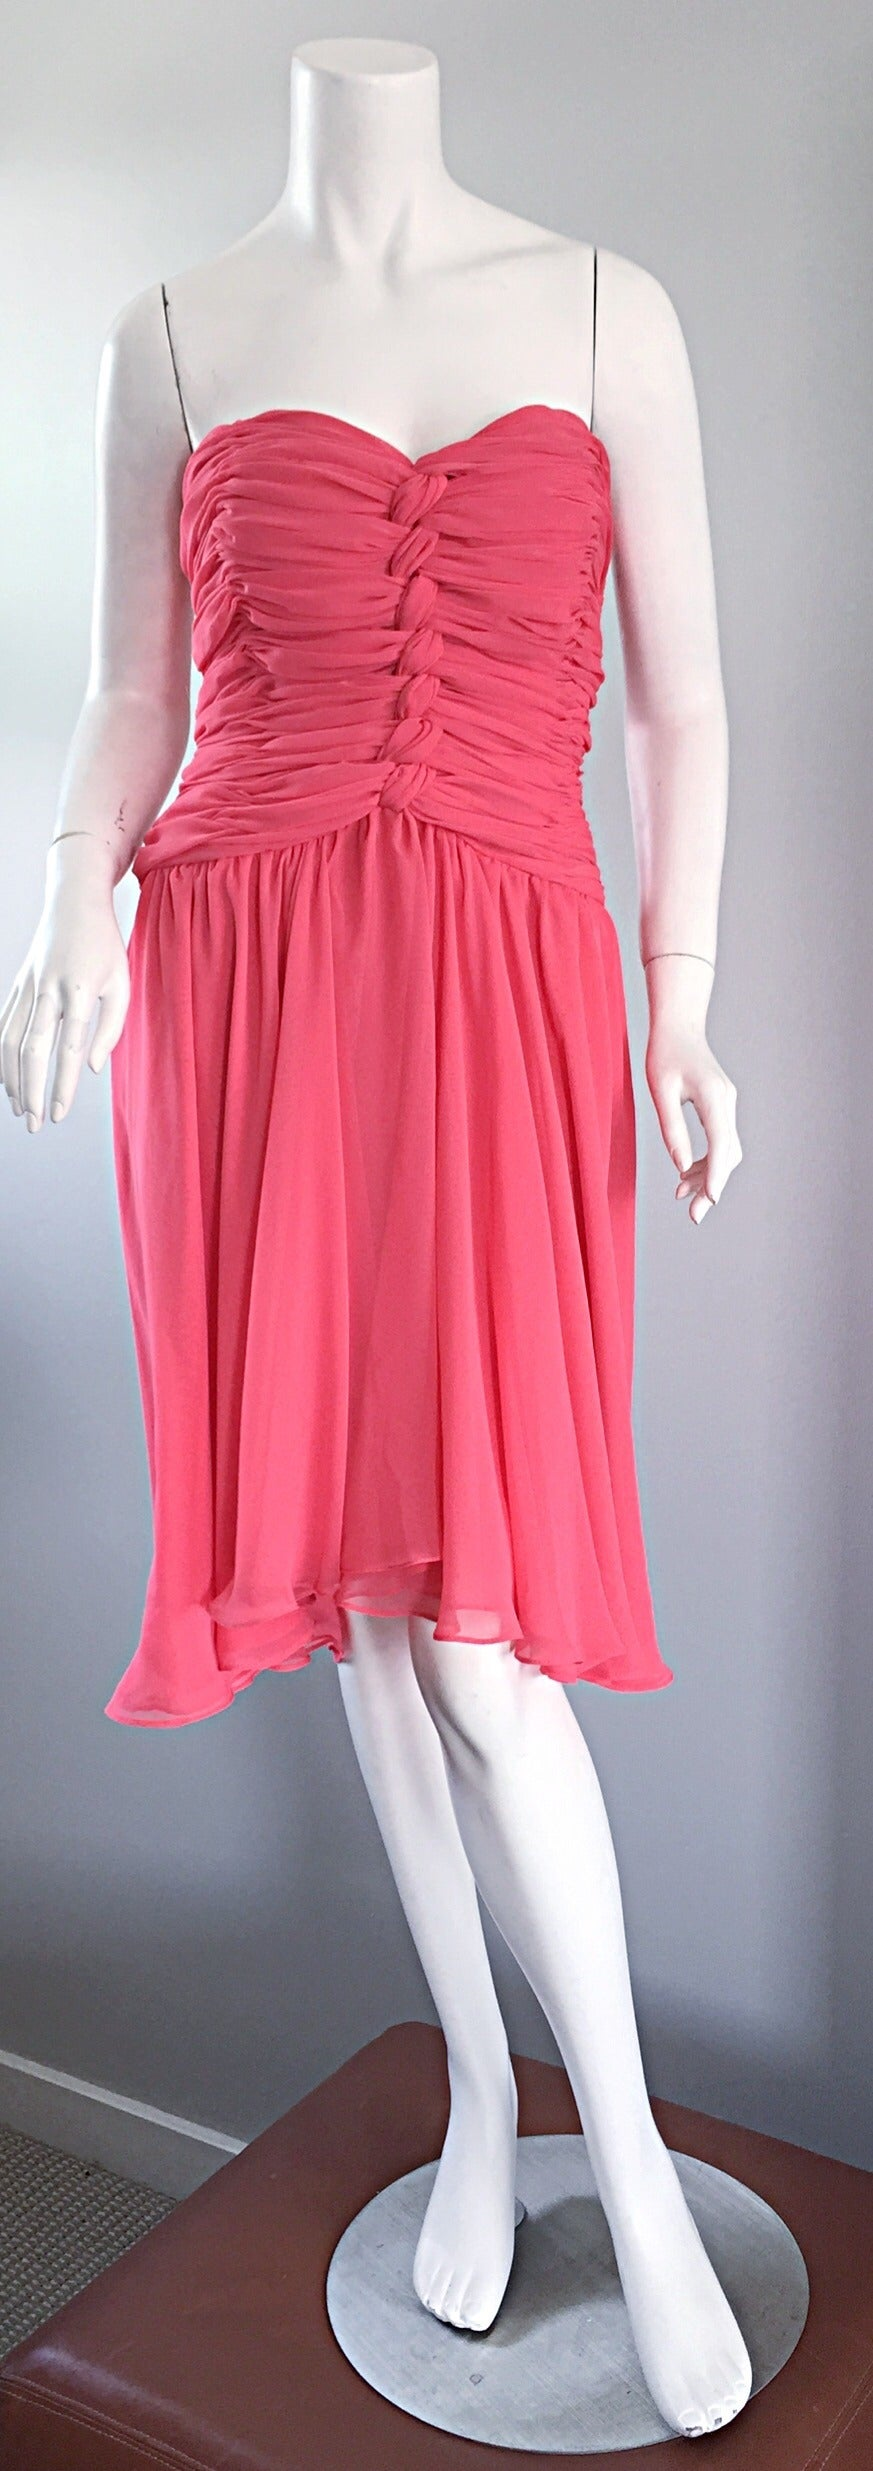 Victor Costa Coral Pink Strapless Flowy Knotted Vintage Cocktail Dress Size 8 10 2